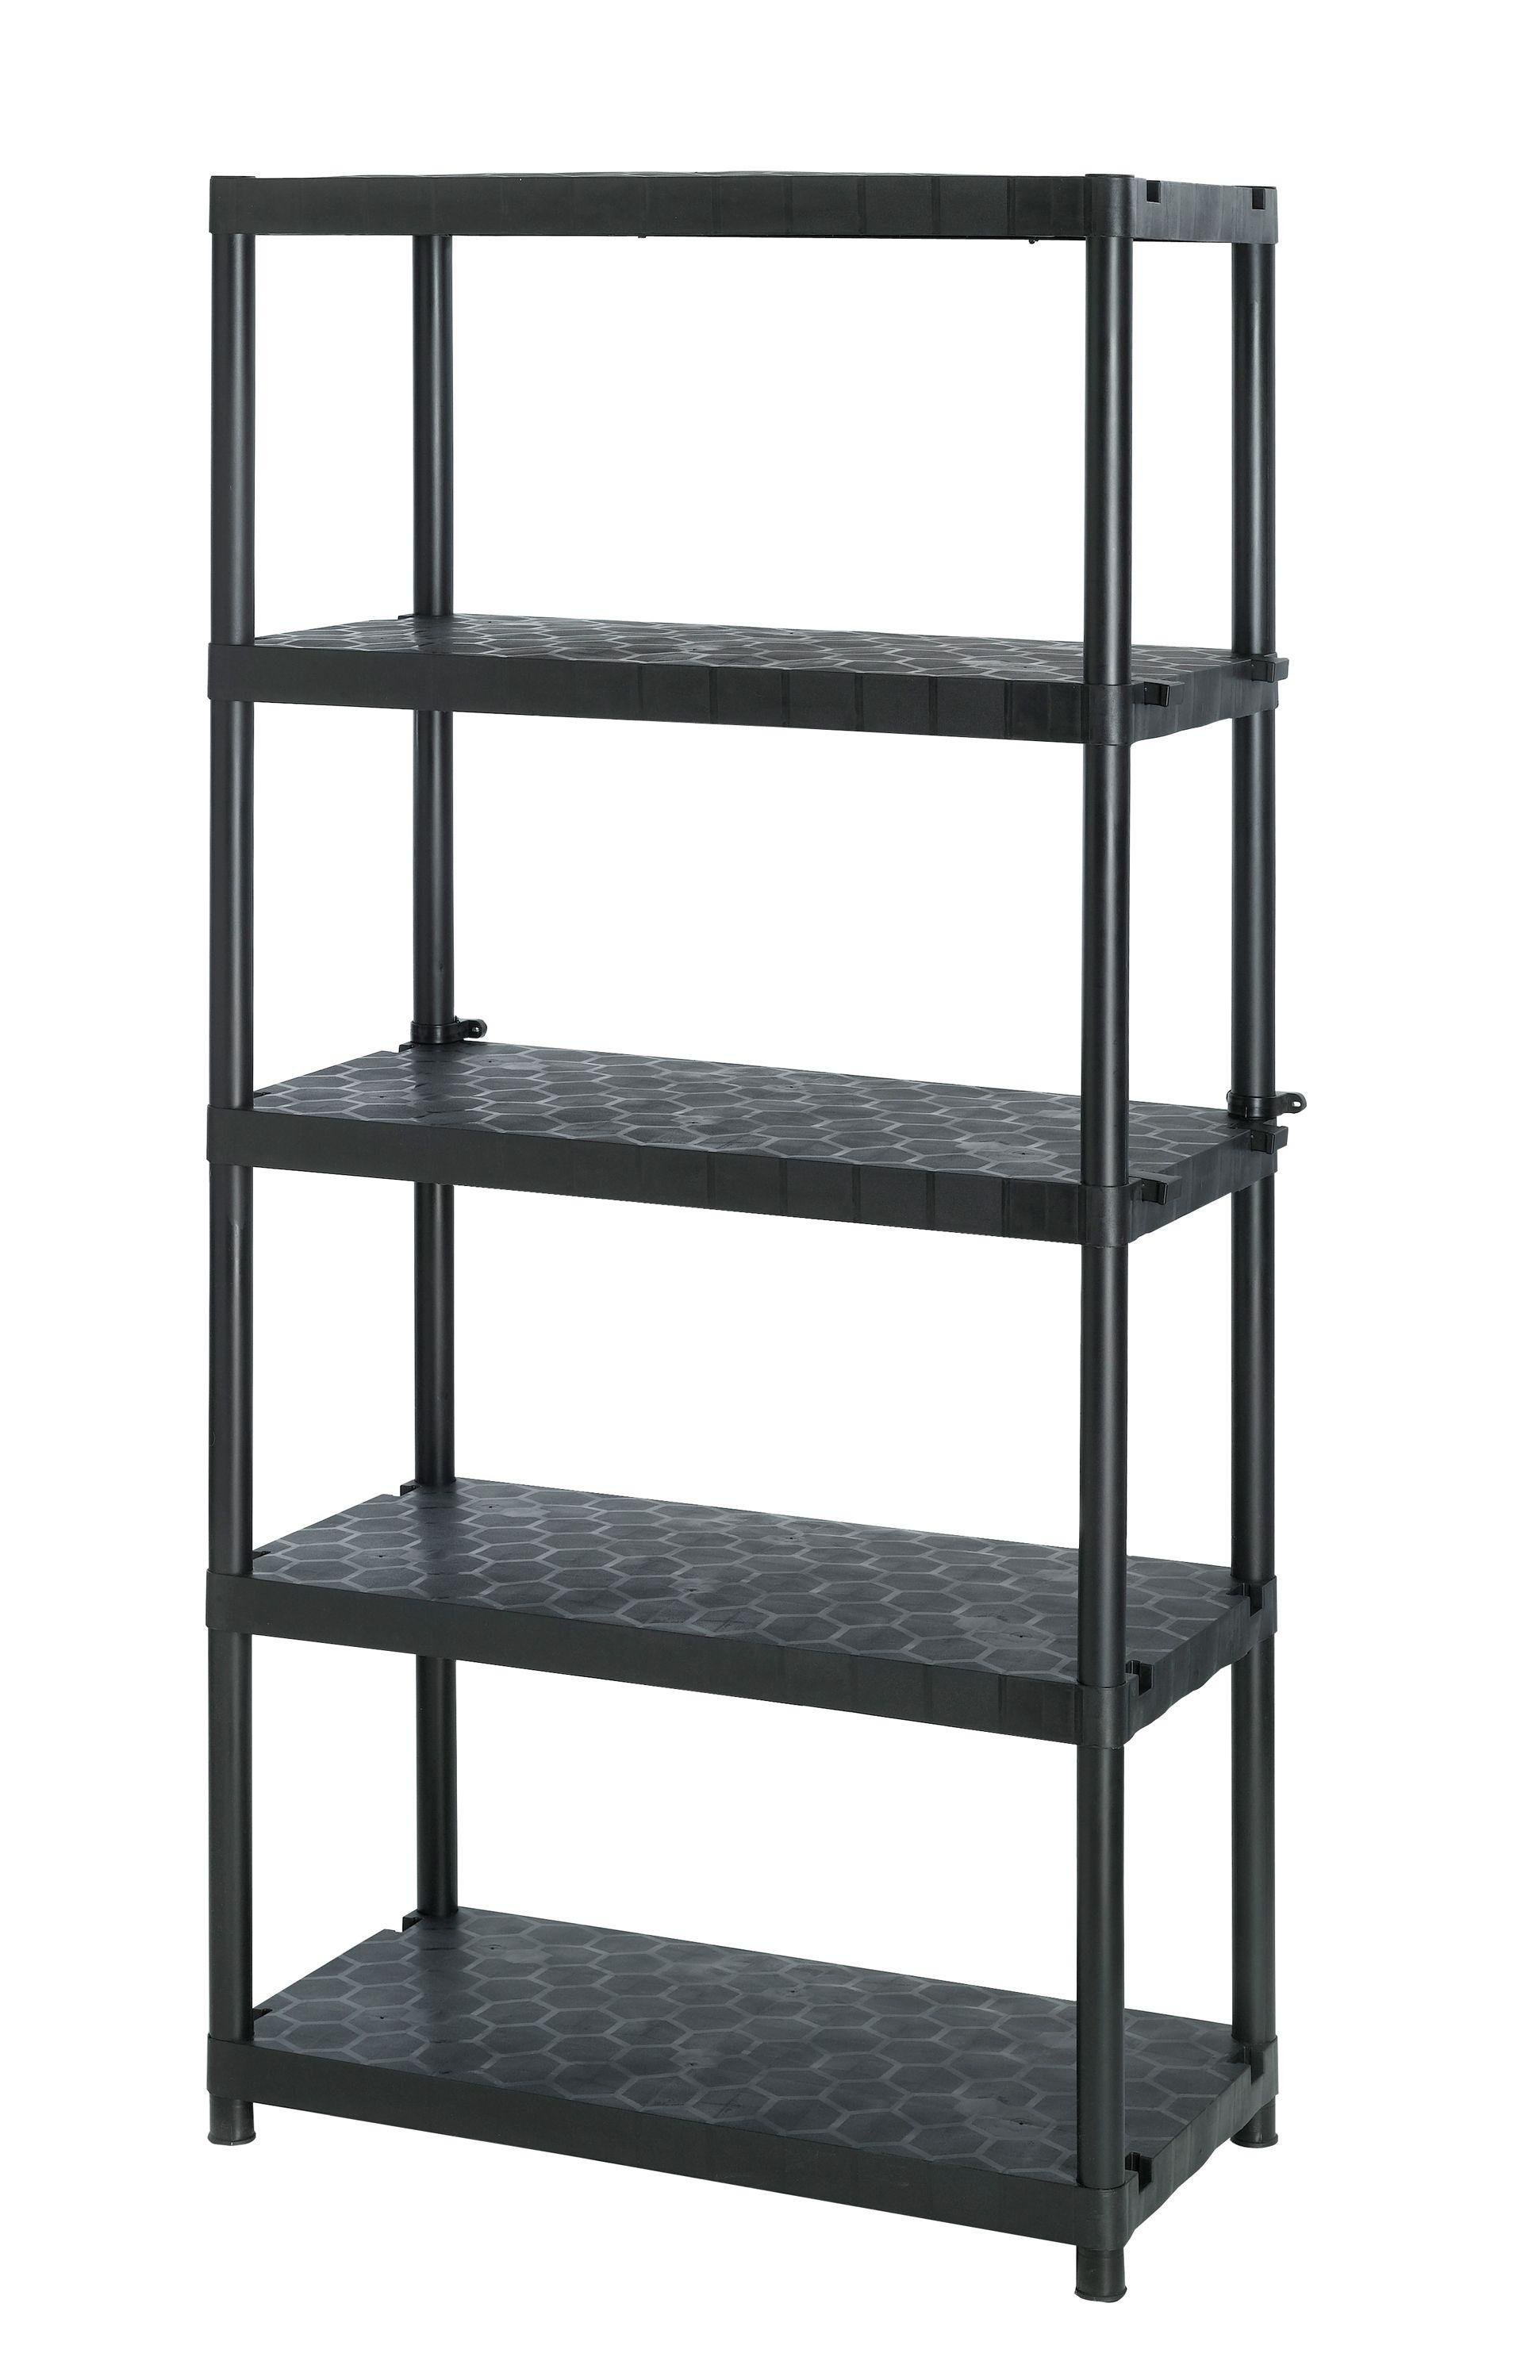 heavy duty storage shelves. Extra Heavy Duty 5 Tier Plastic Garage Shelving Storage Unit Shelves